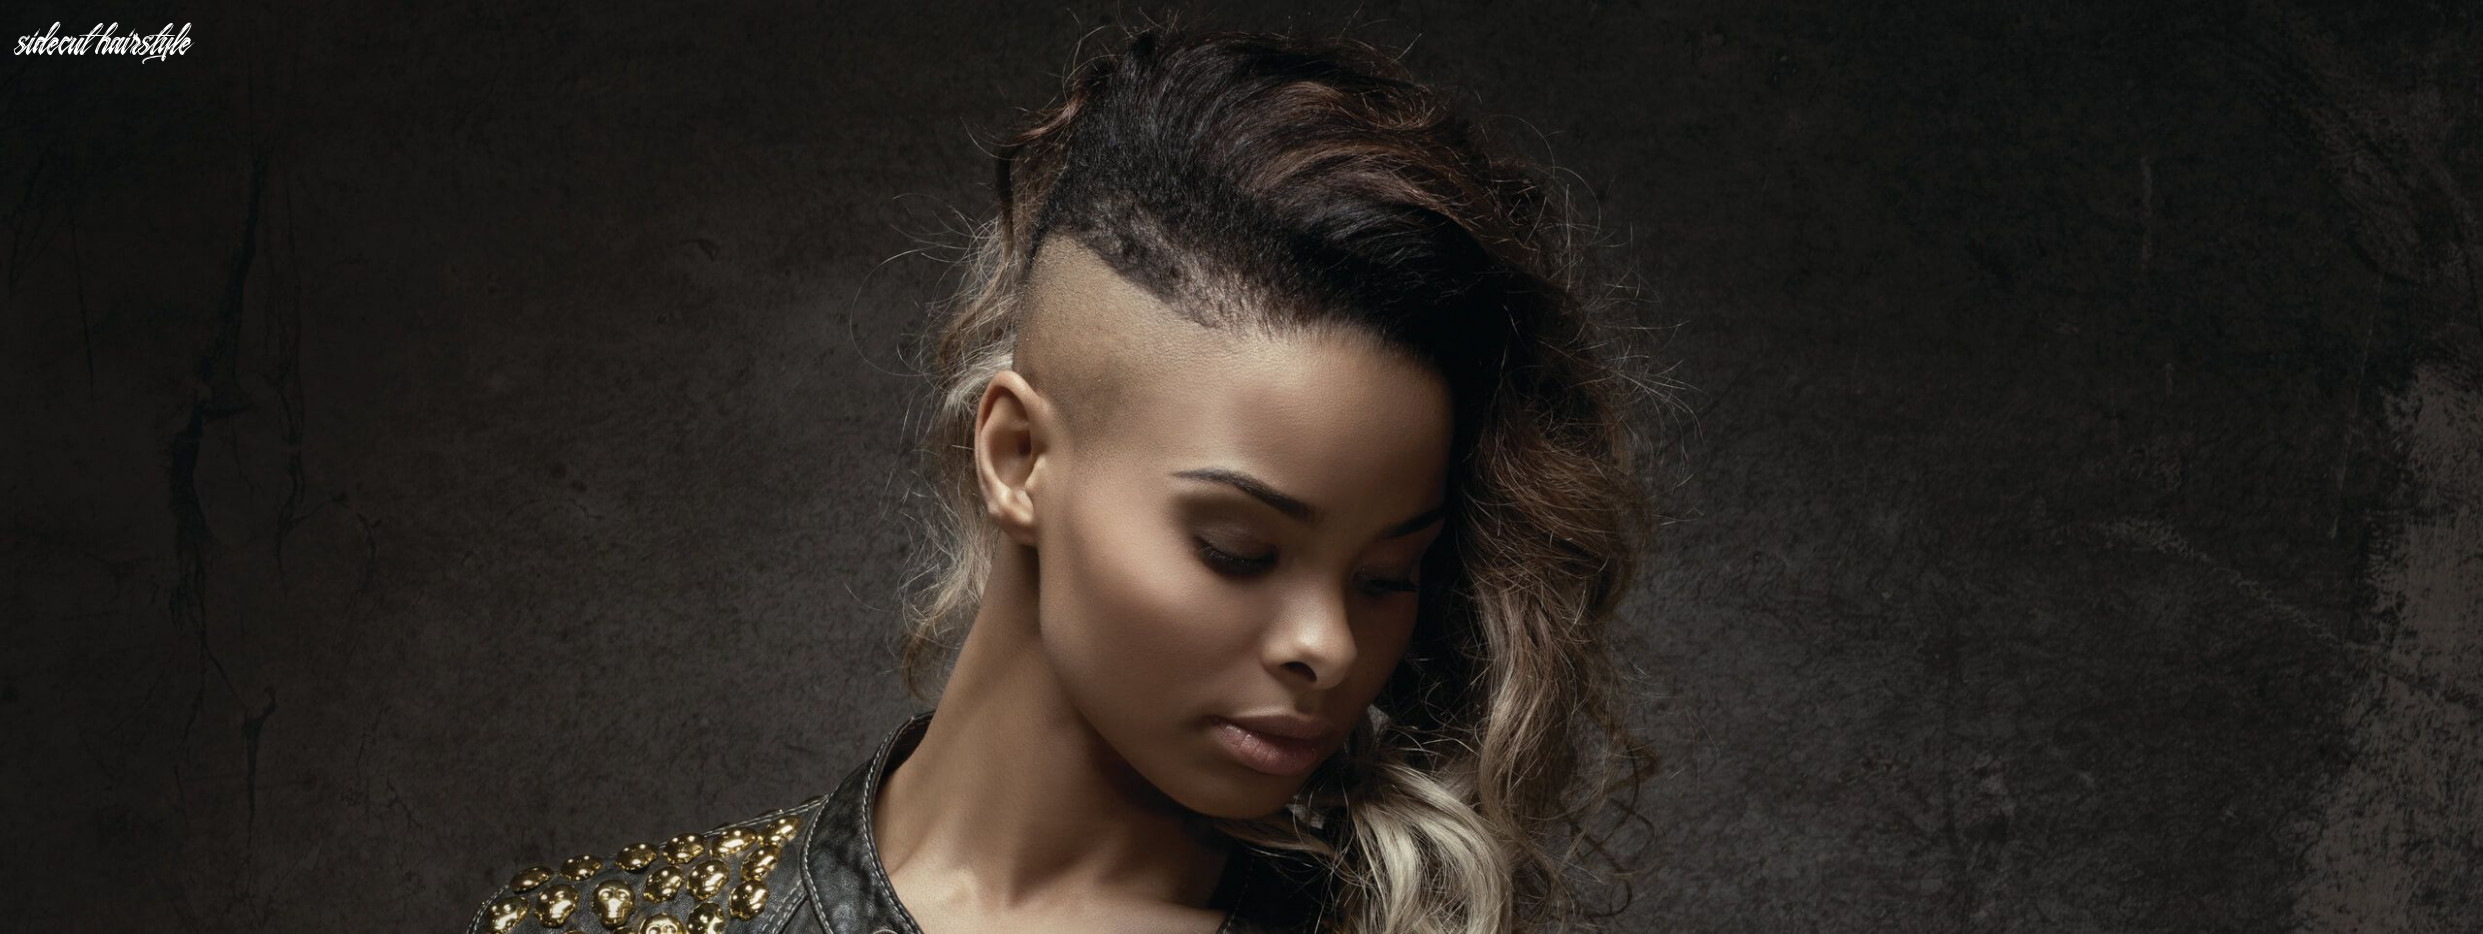 Side cut hair: tips and tricks for wearing the trend sidecut hairstyle